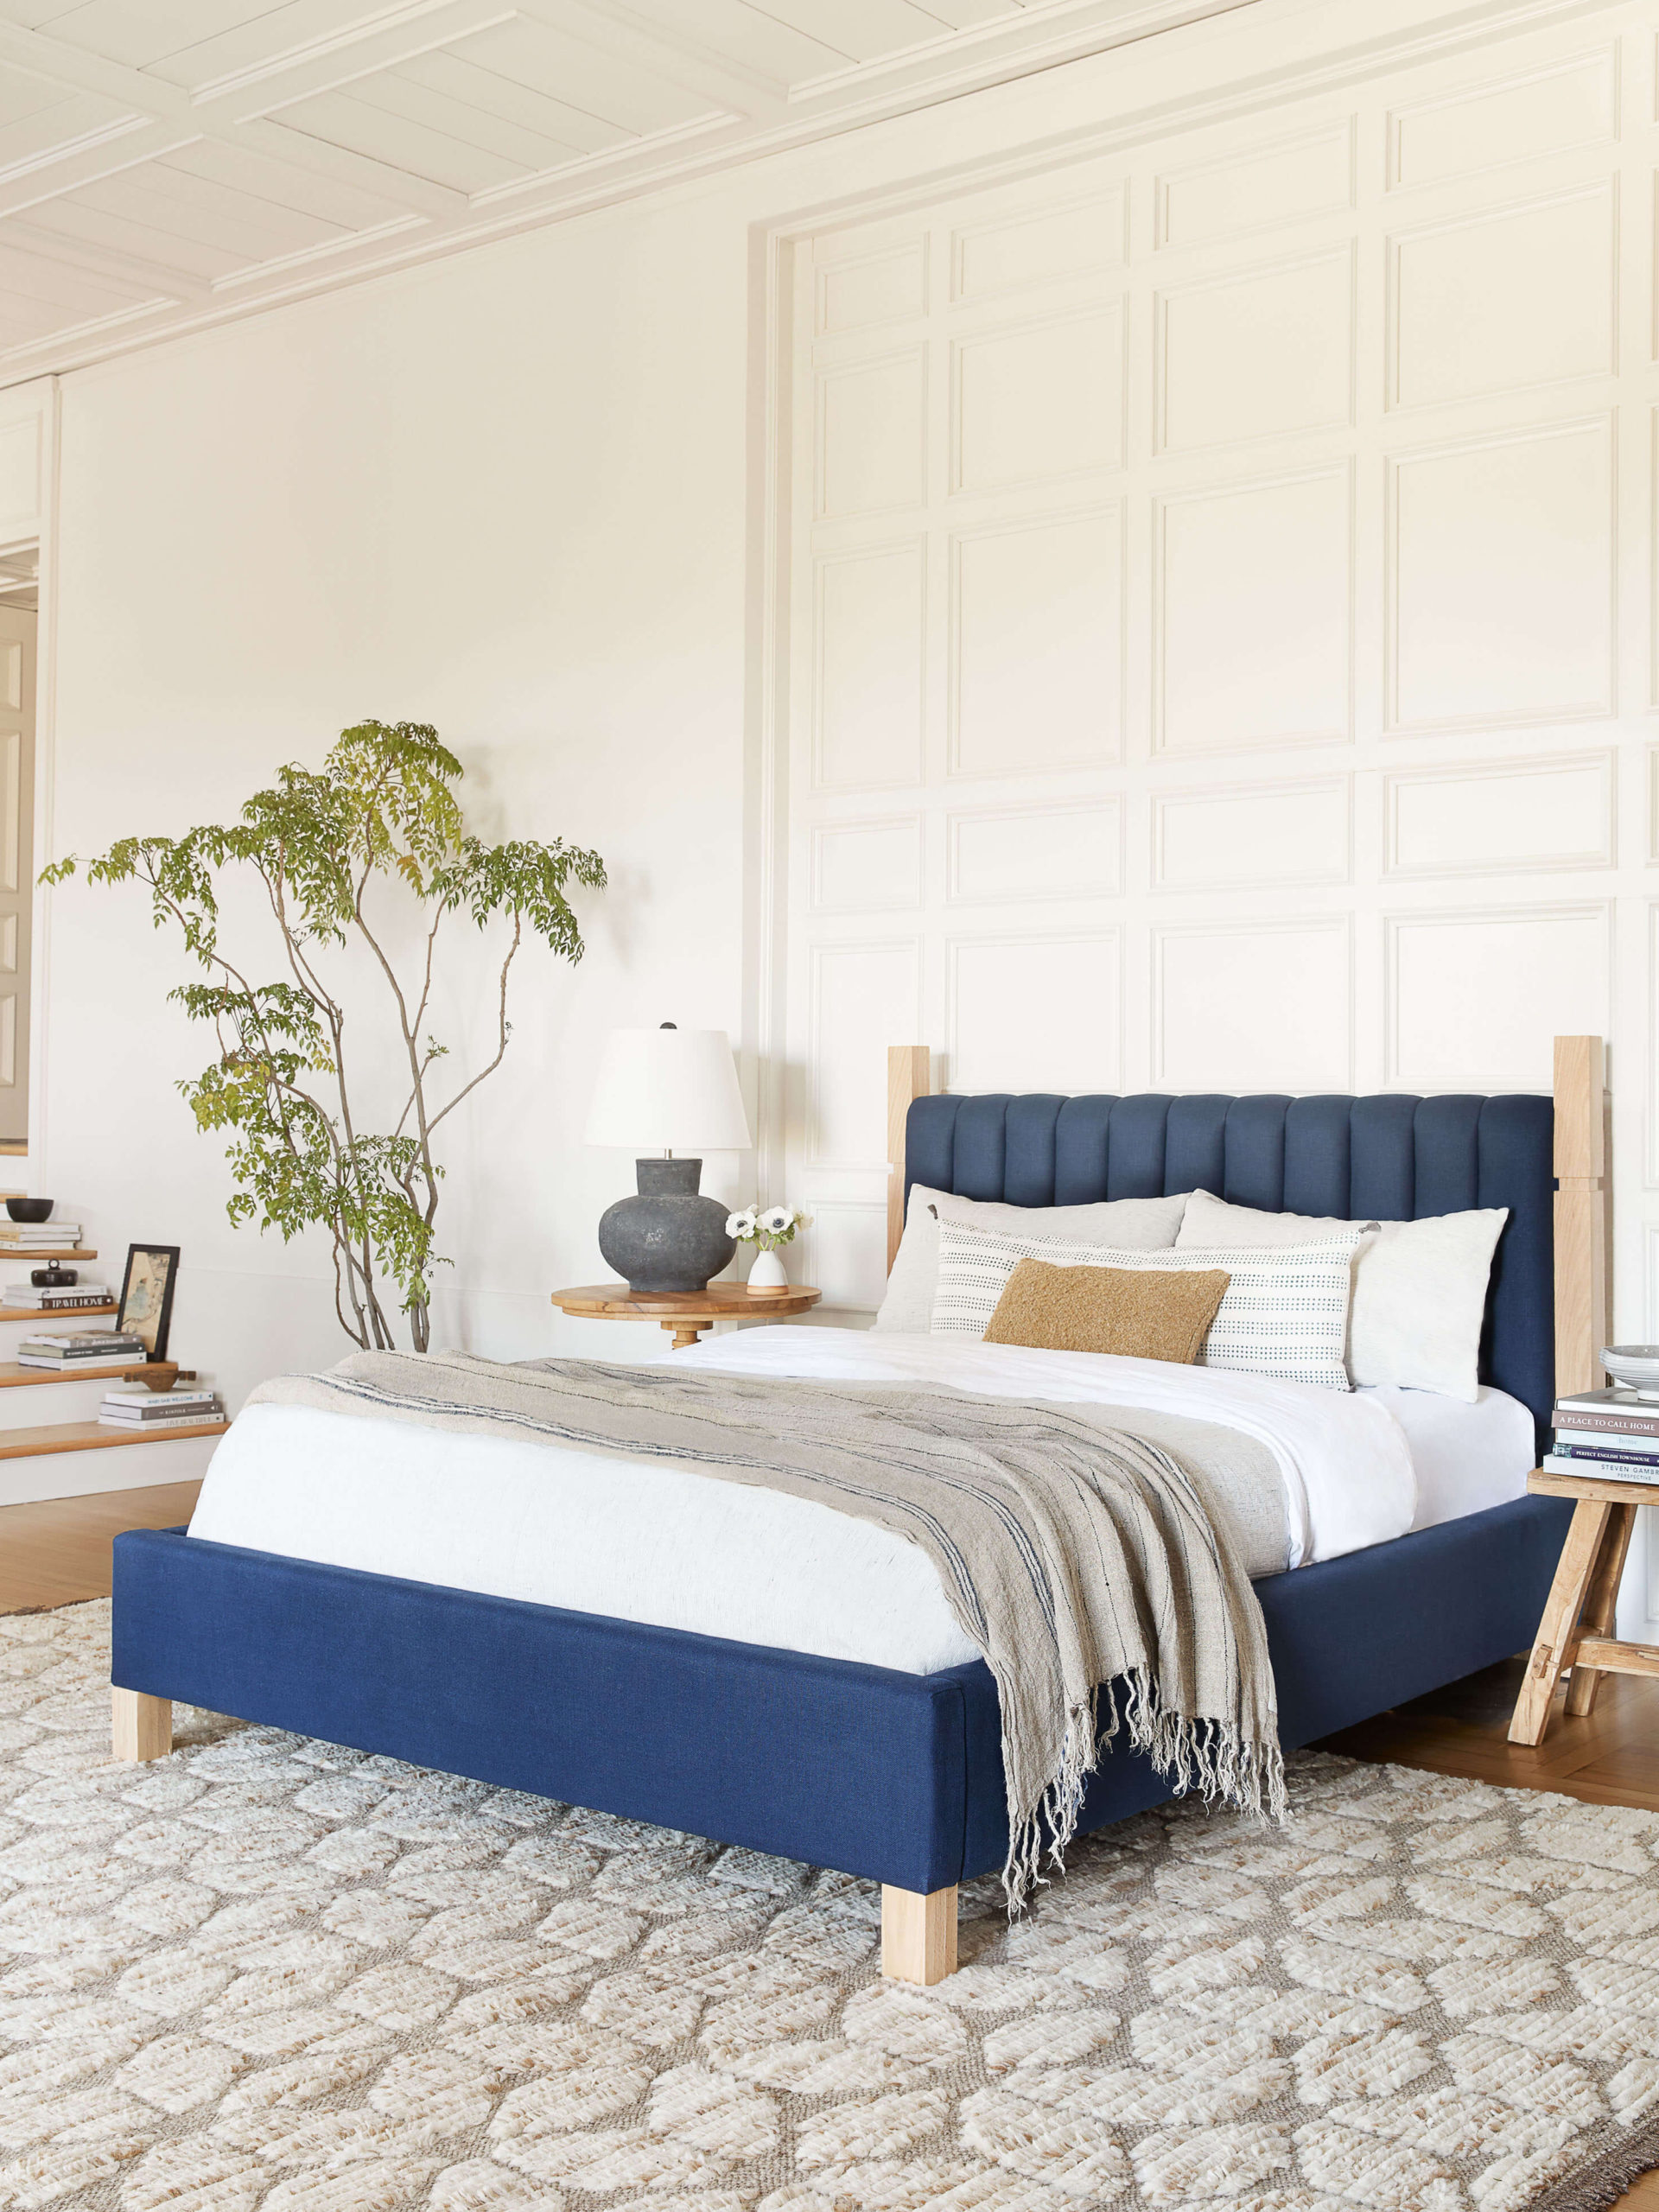 Blue linen channel tufted bed GMDxLG Interior Design By Los Angeles based Ginny Macdonald Design